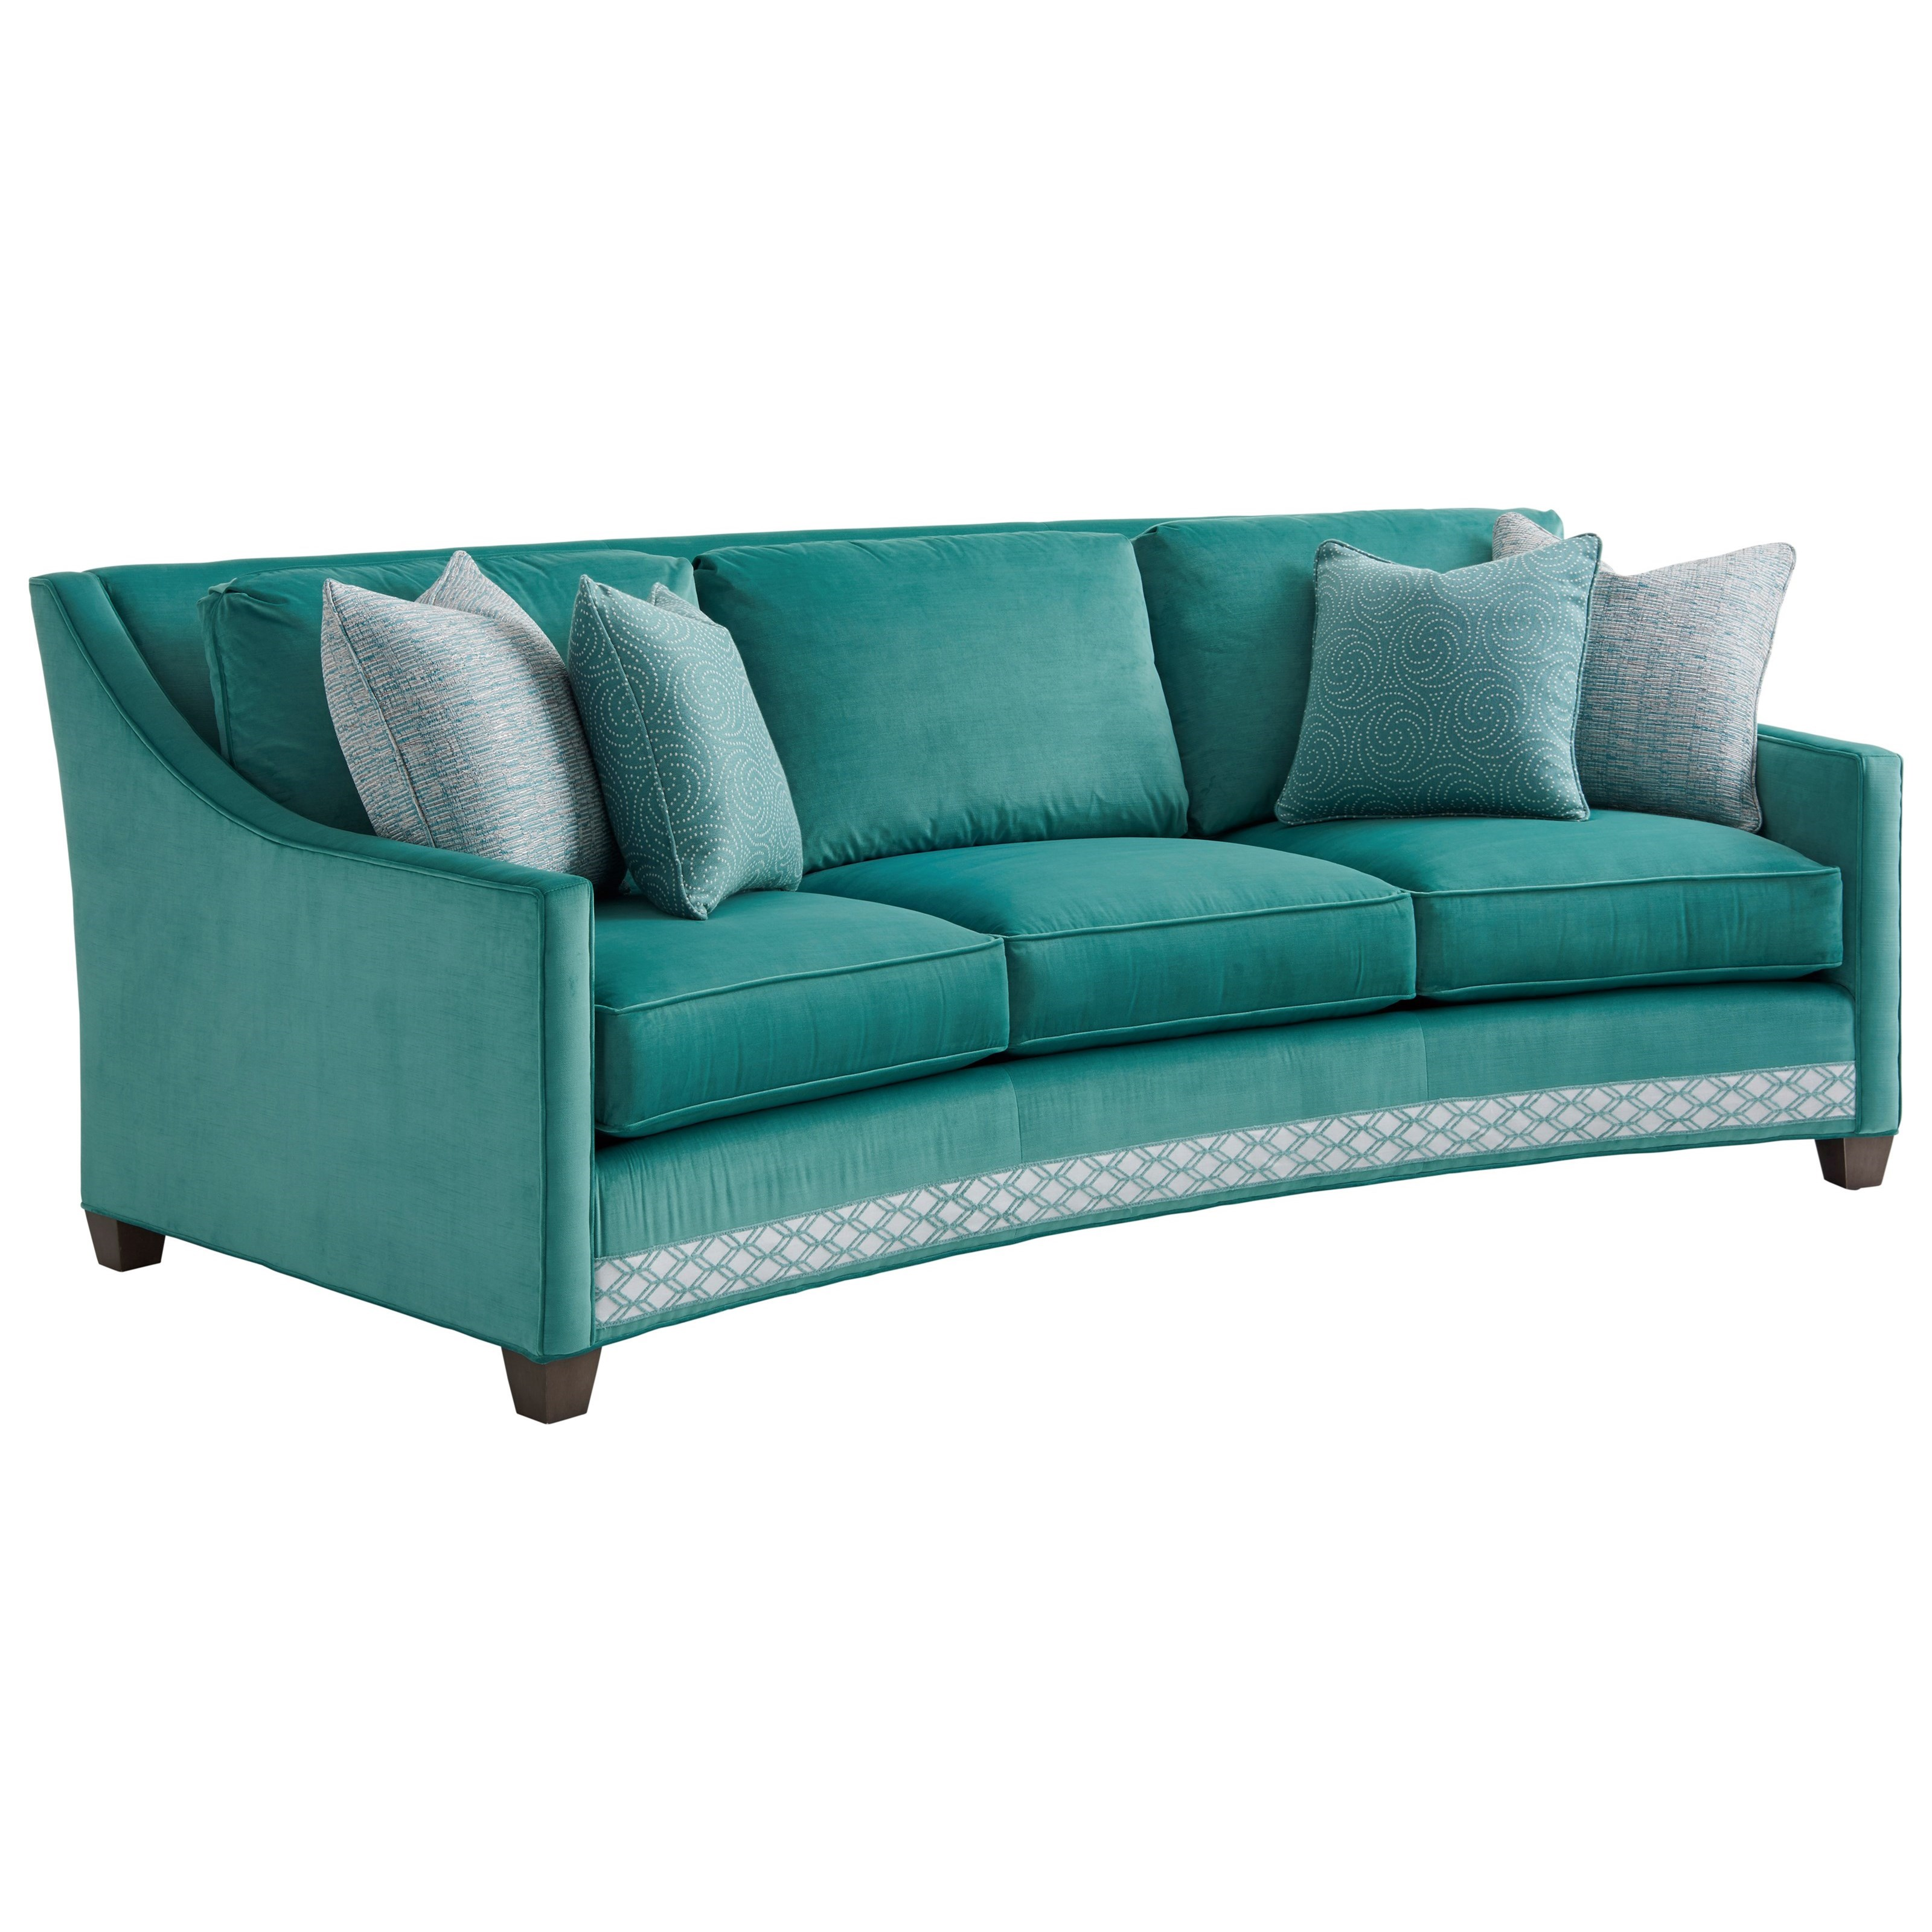 Ariana Valenza Curved Sofa by Lexington at Fisher Home Furnishings